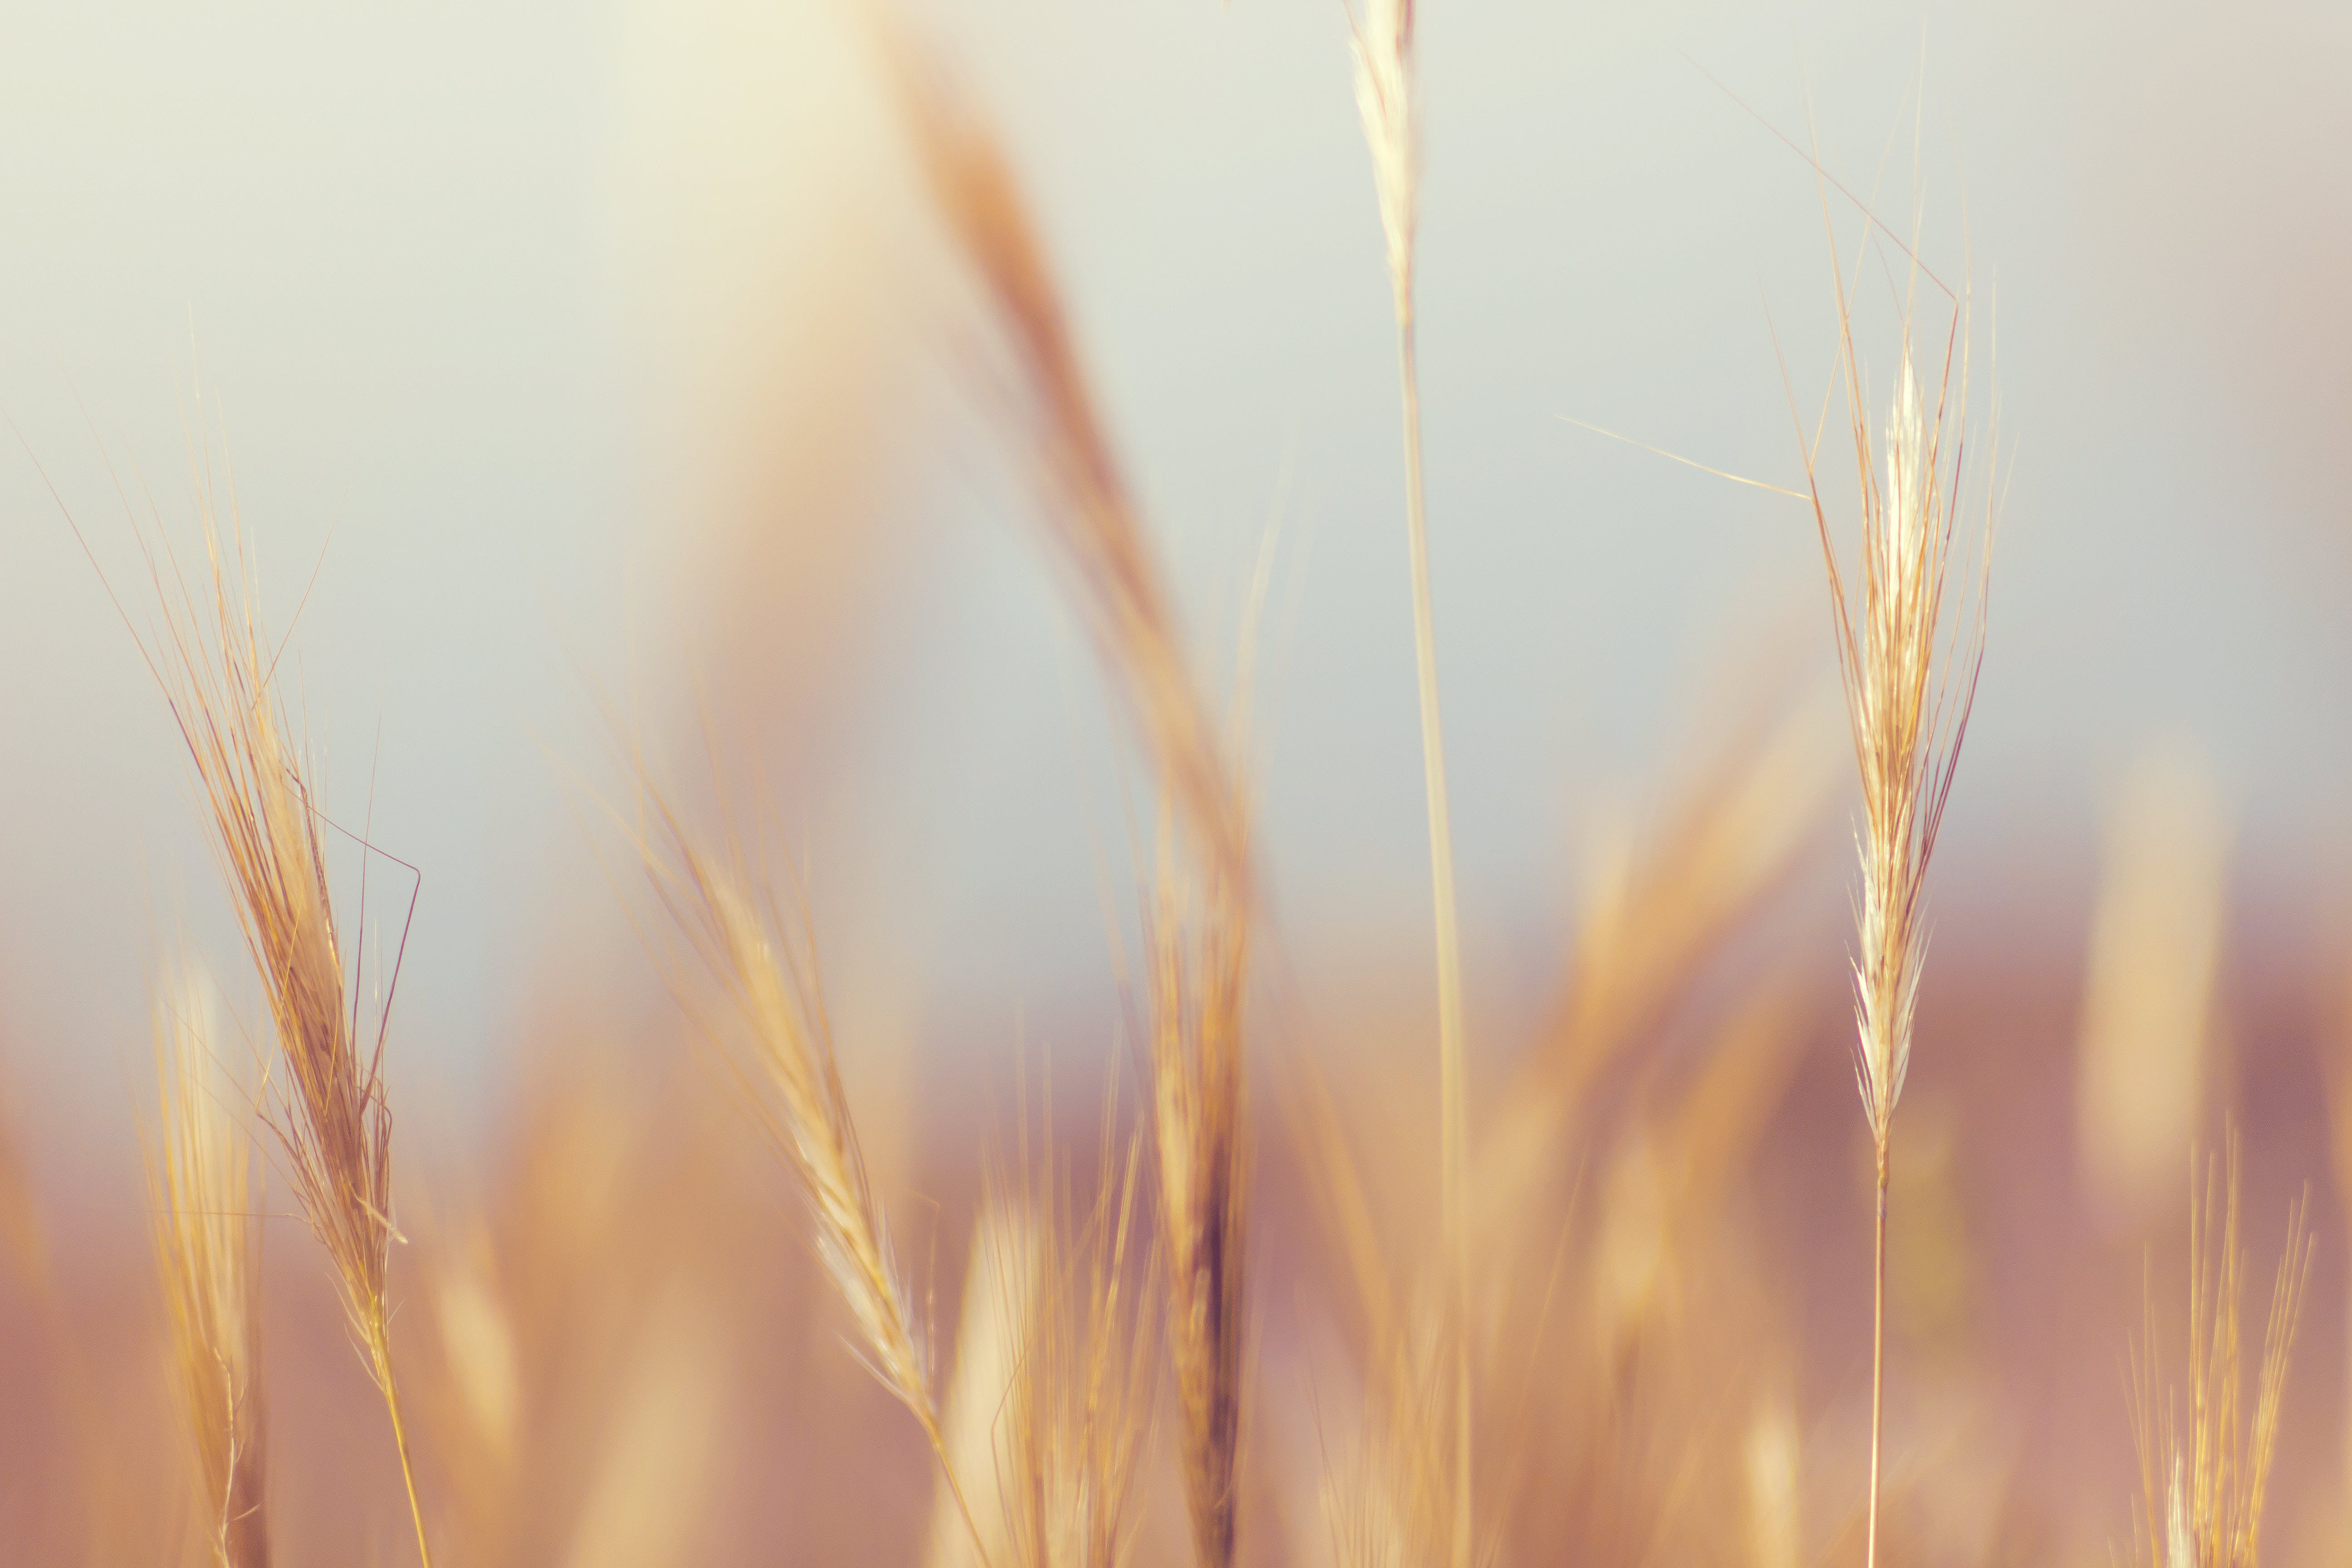 Free stock photo of nature, grass, plant, macro